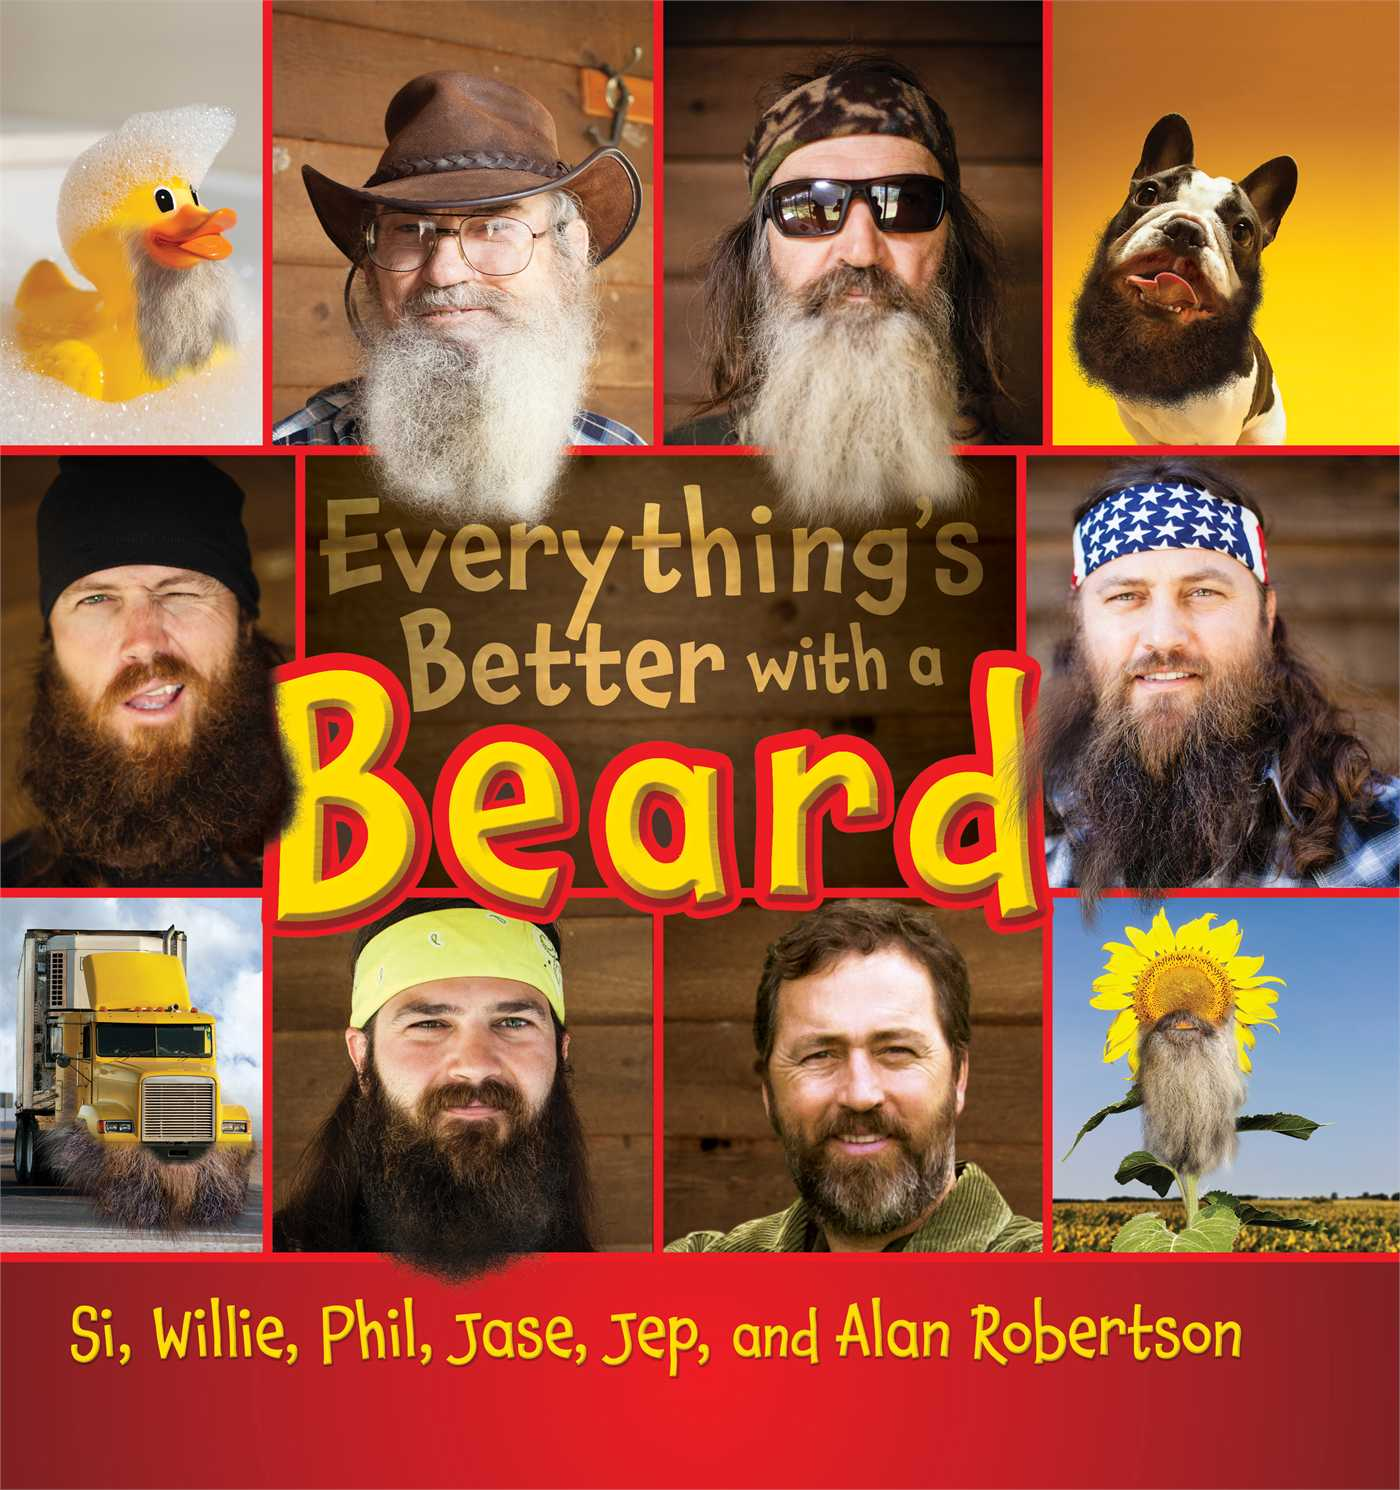 Everythings-better-with-a-beard-9781481418171_hr